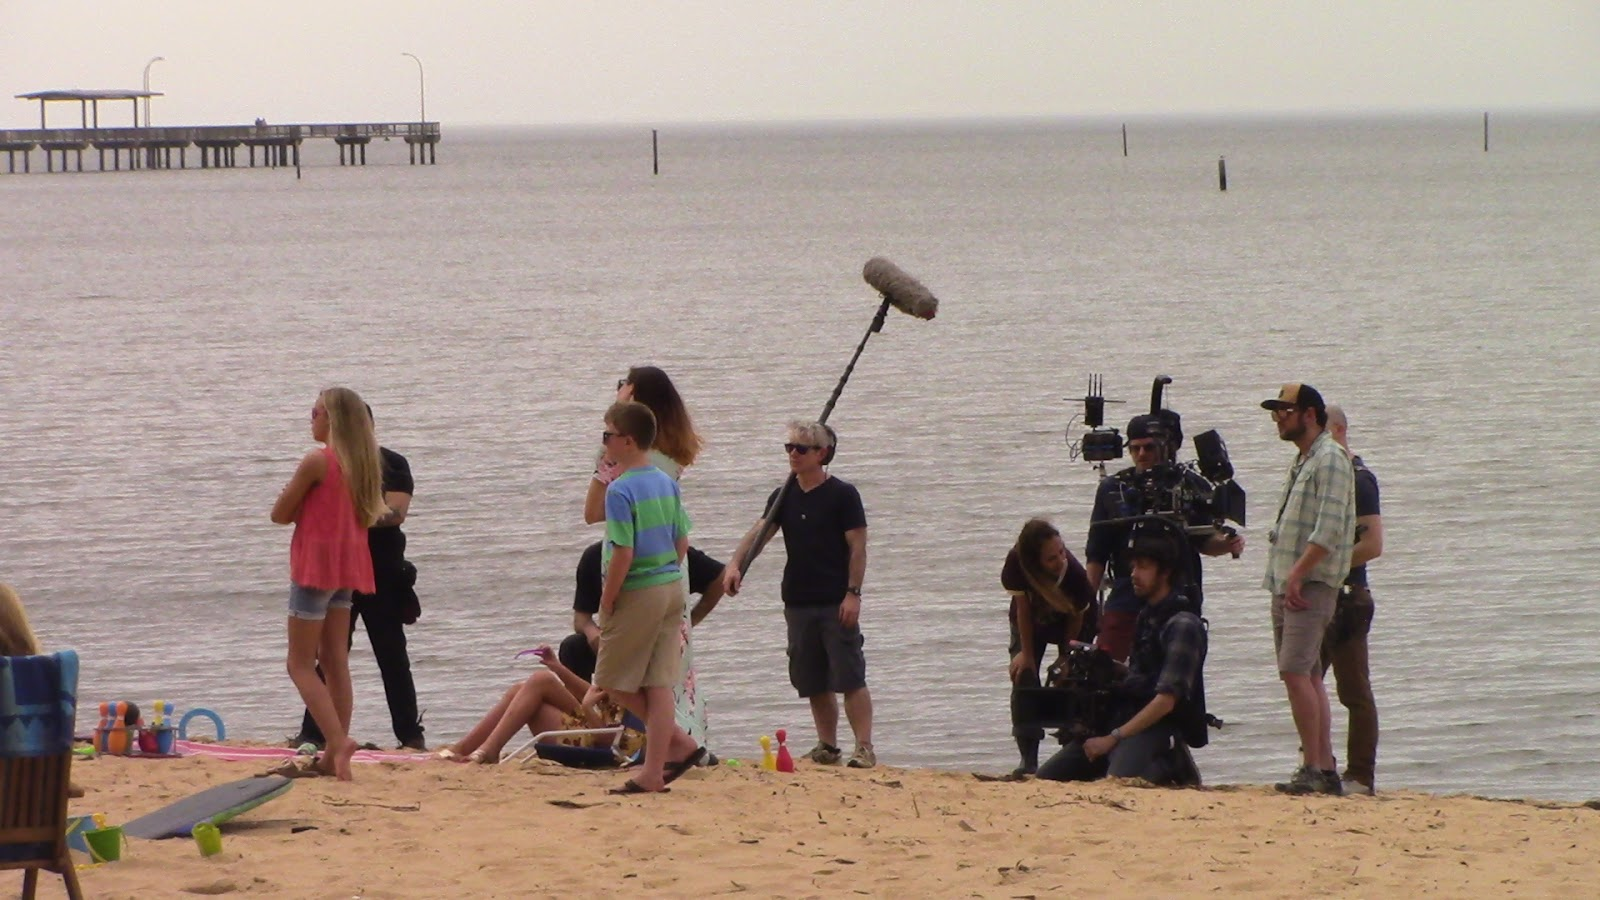 The Fairhope Times : 'The Friend' Movie Filming Begins